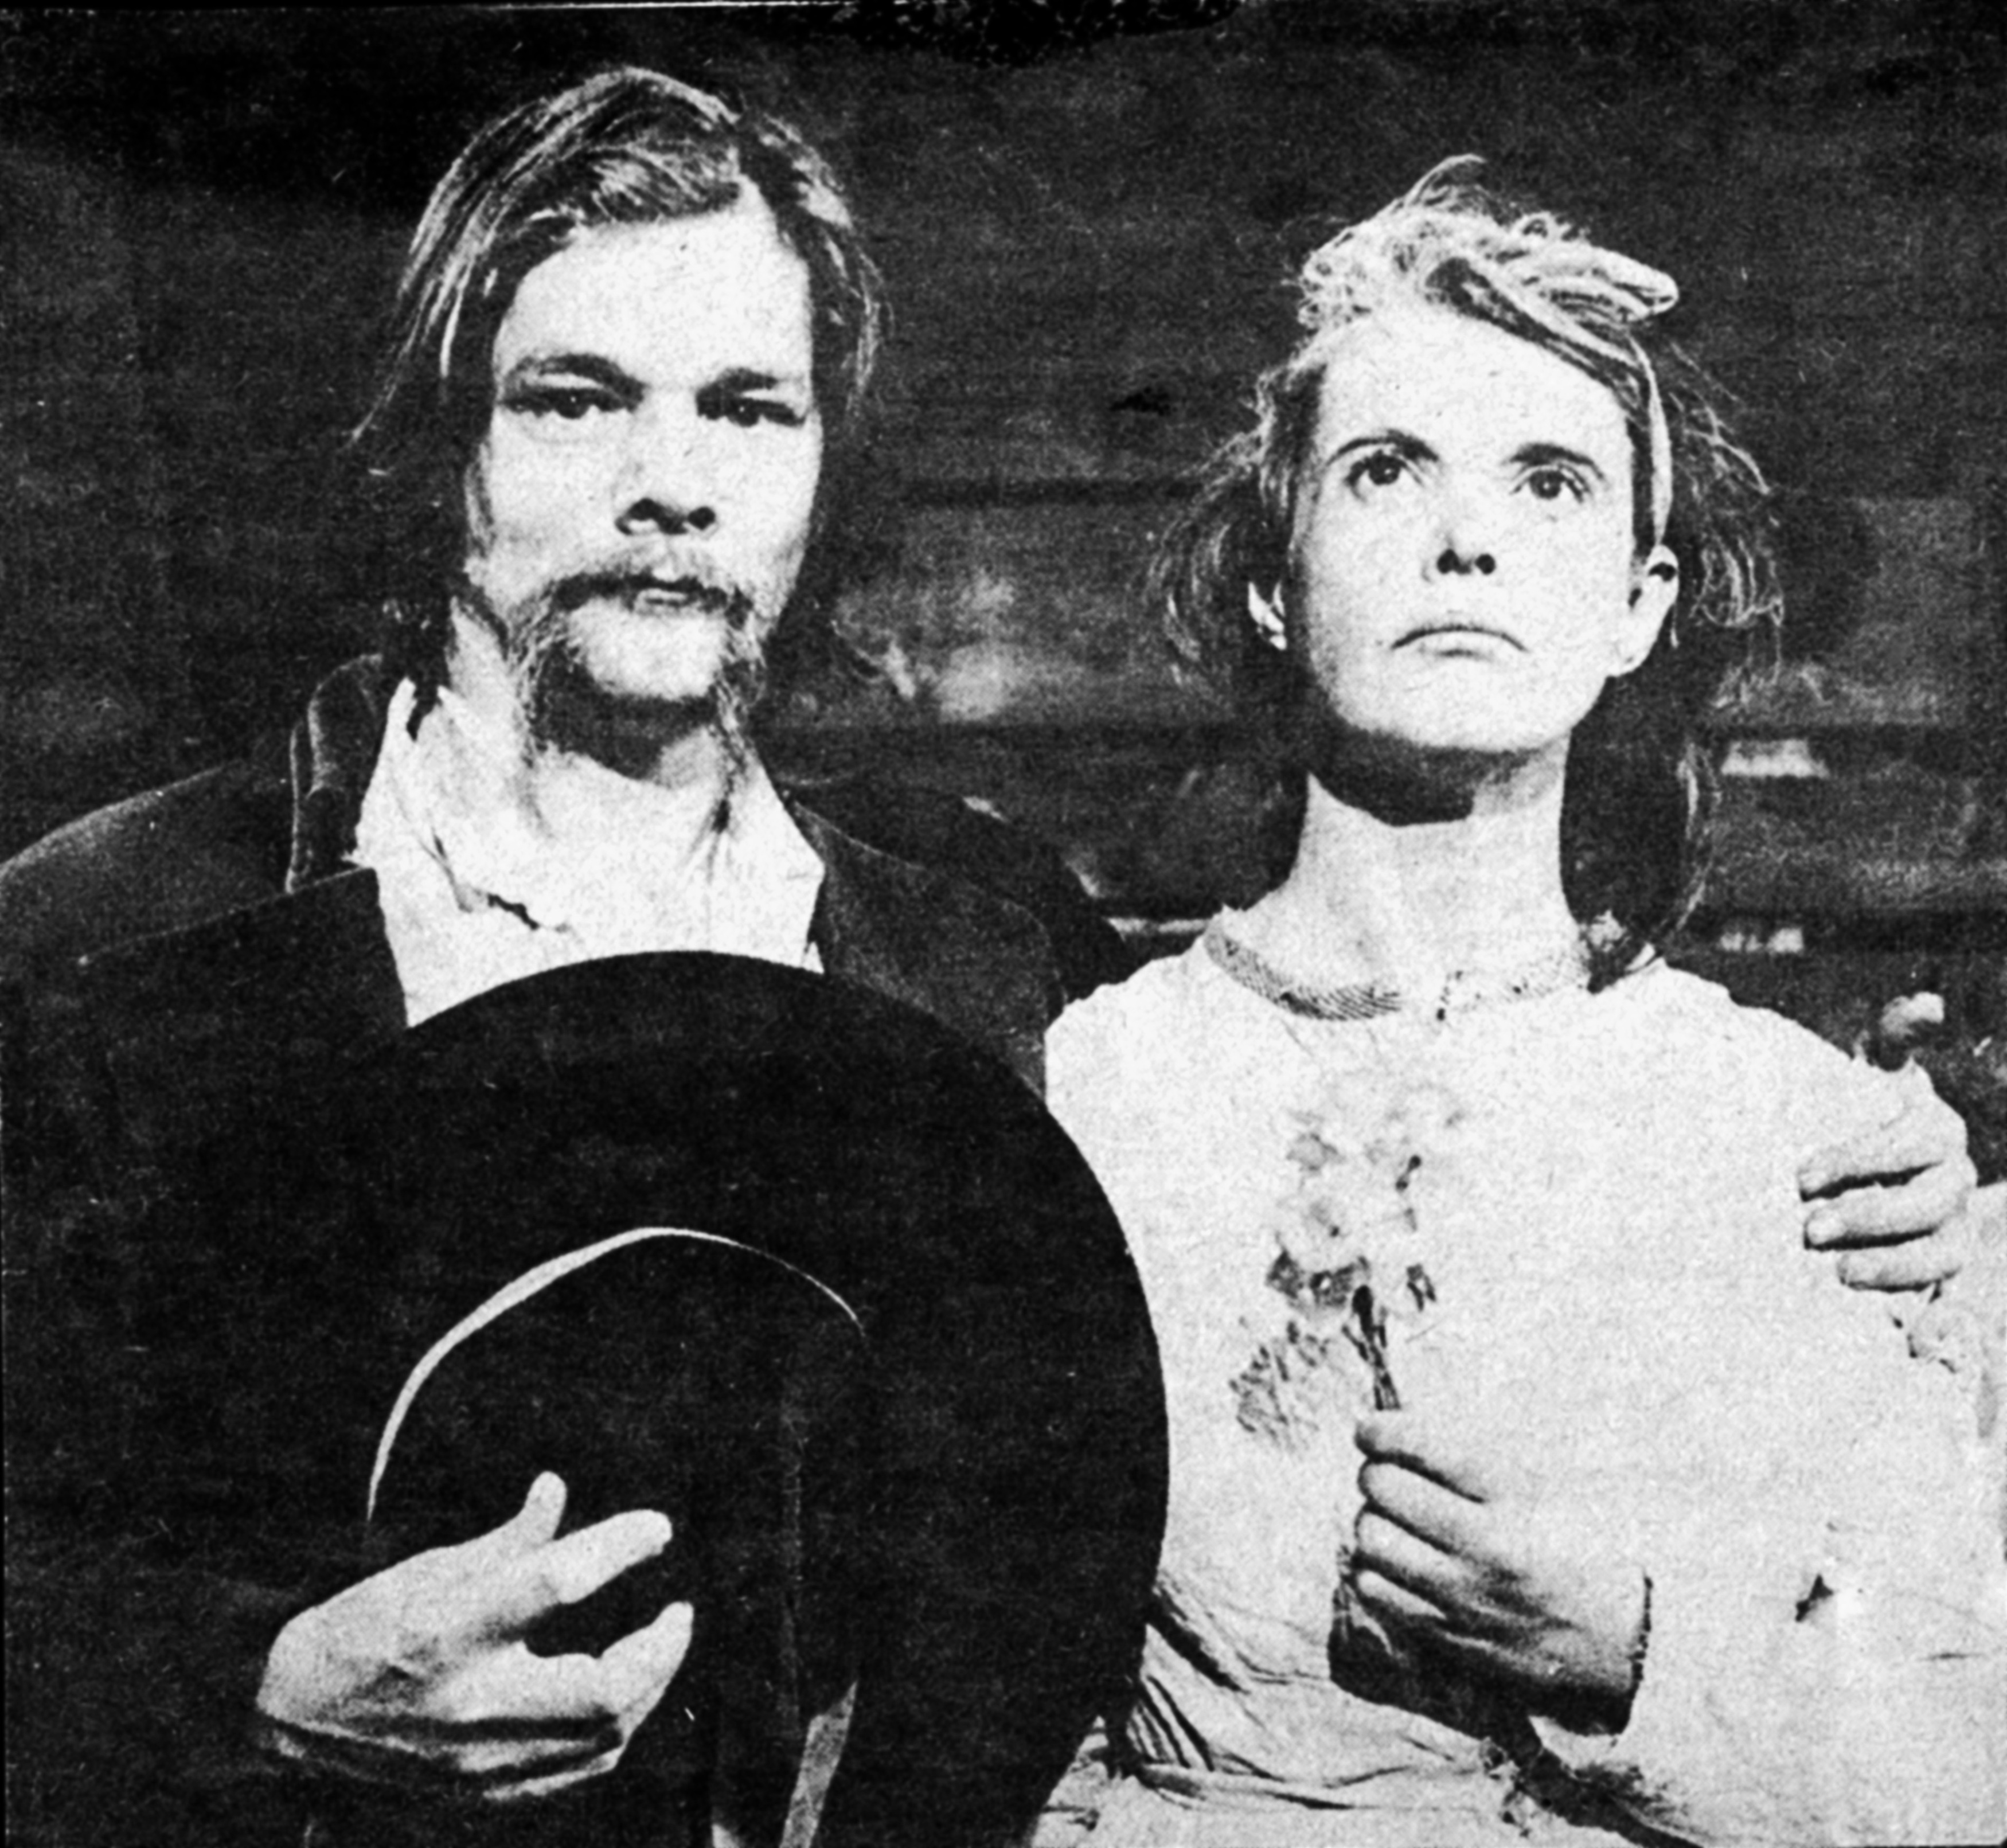 Matthew Cowles and Lois Smith in Tennessee